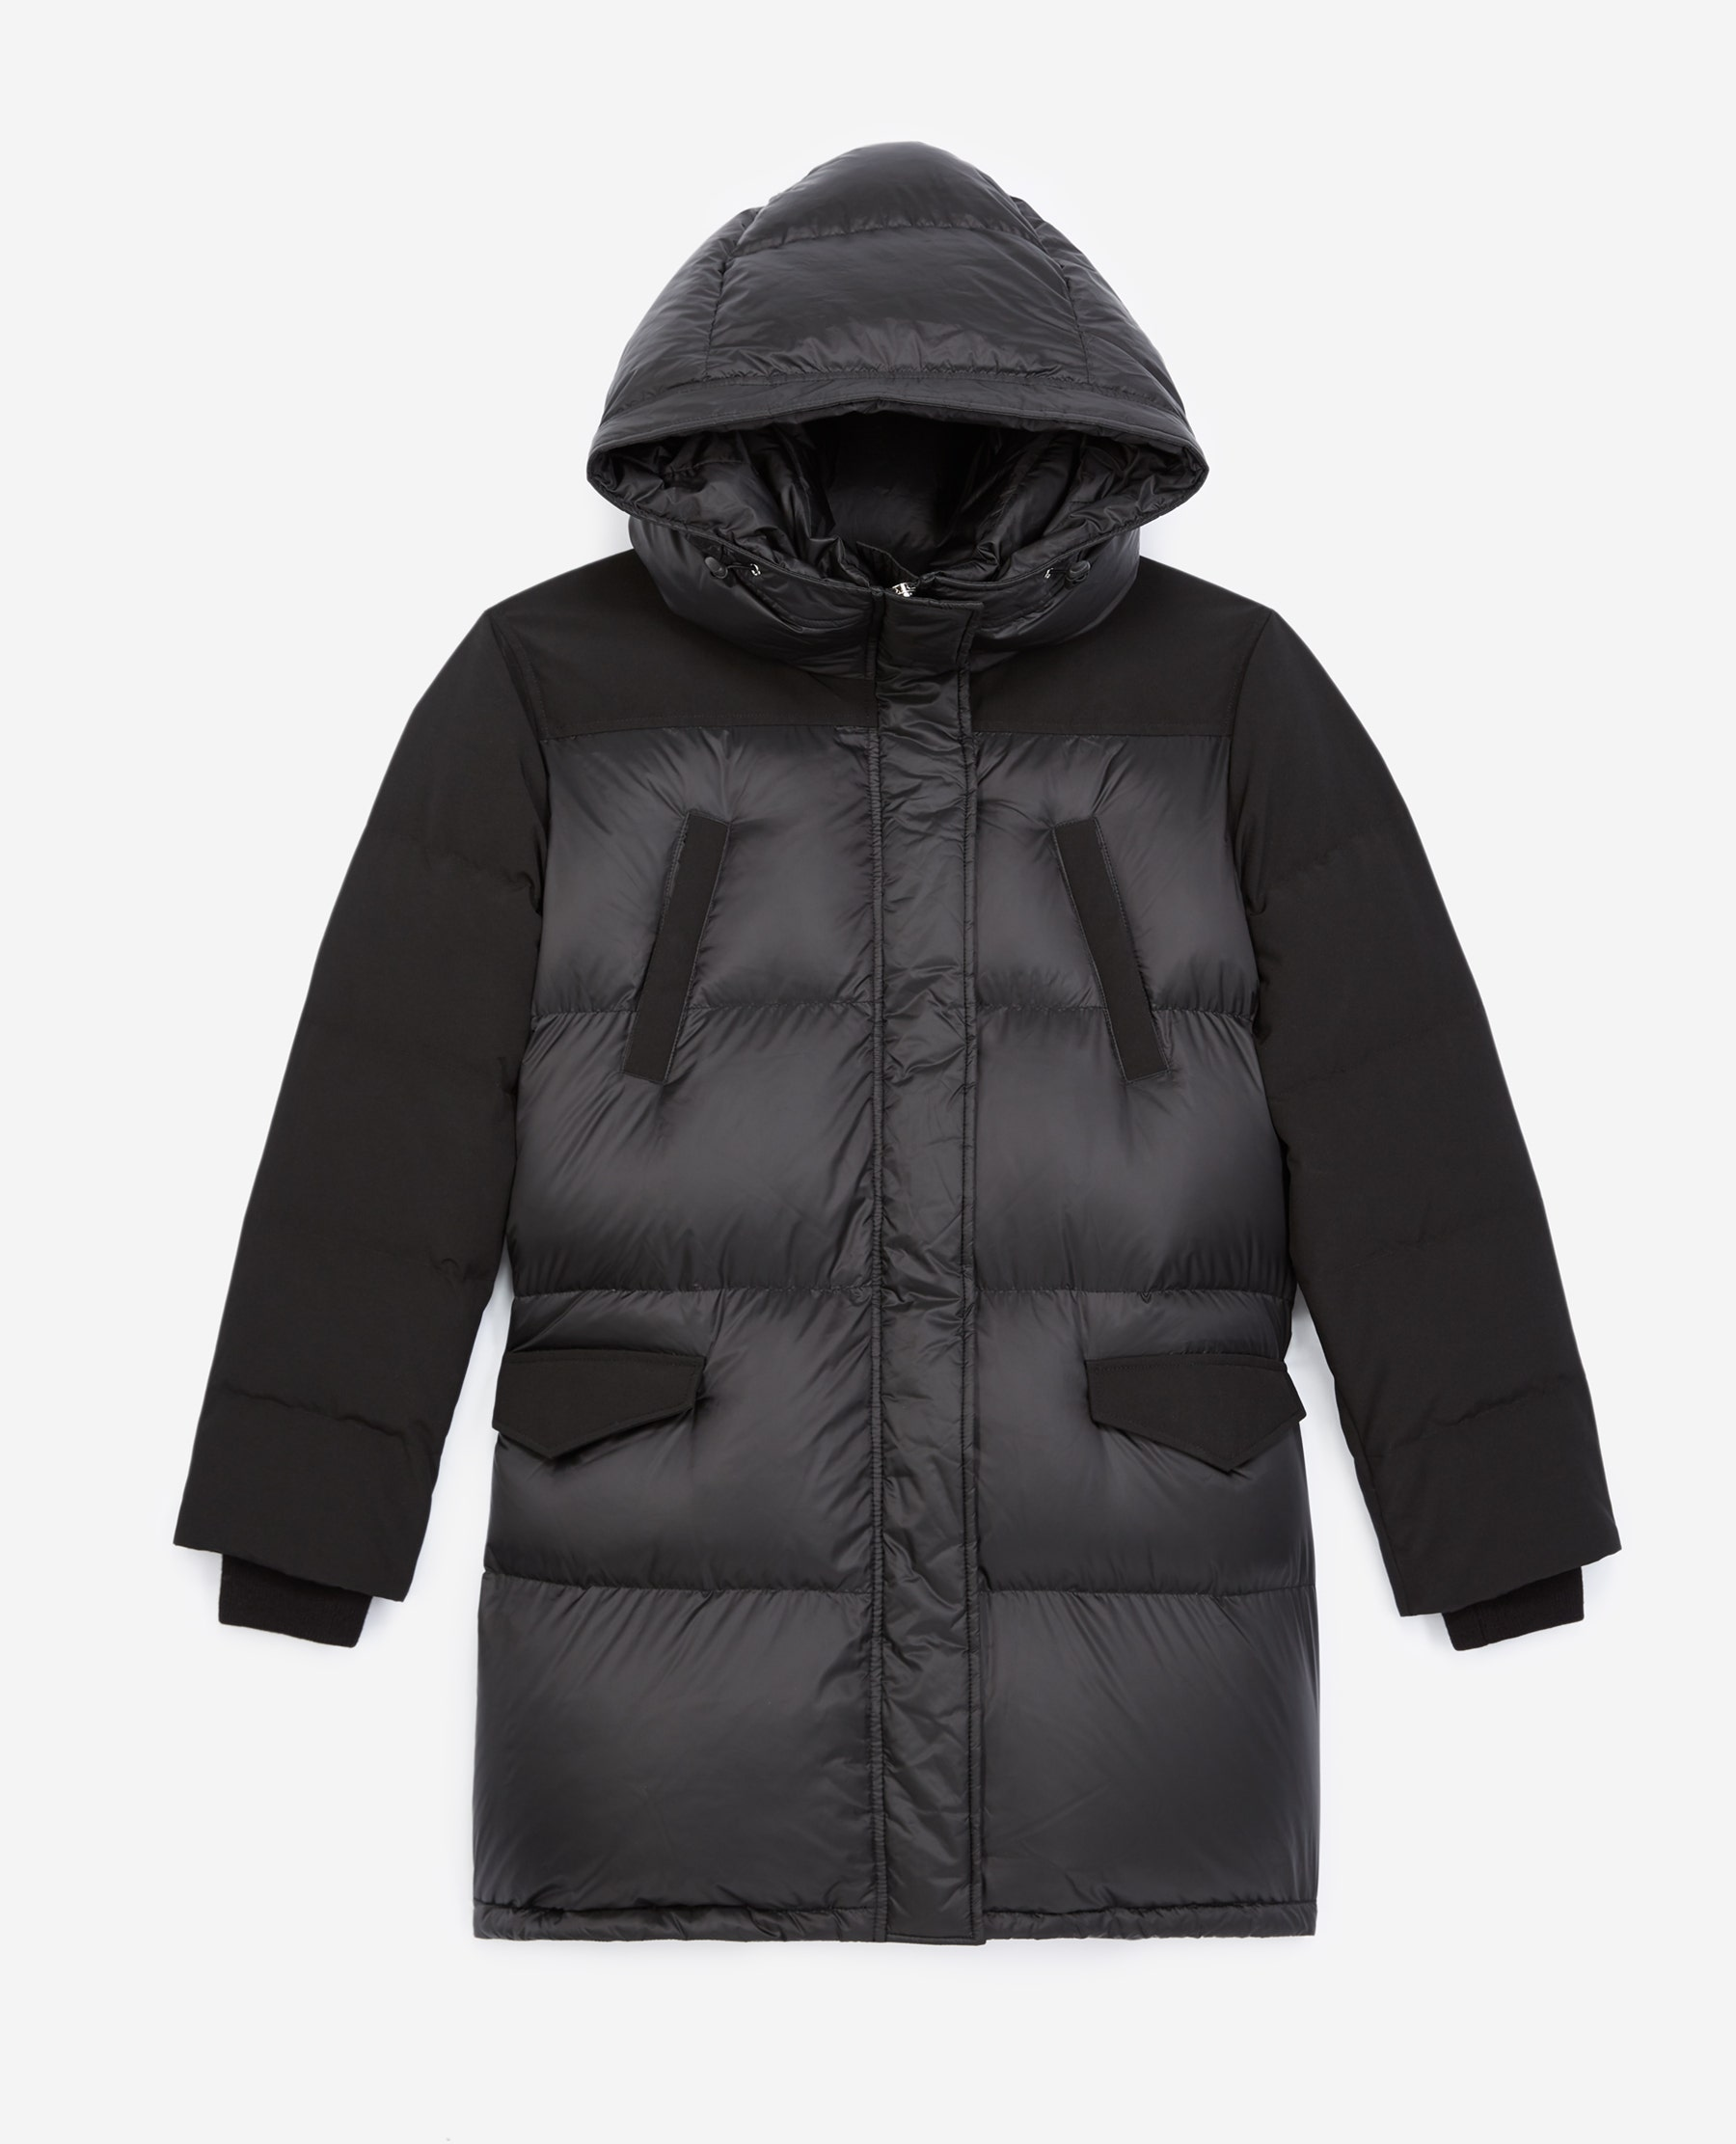 The Kooples - Black dual-material down jacket with hood - WOMEN